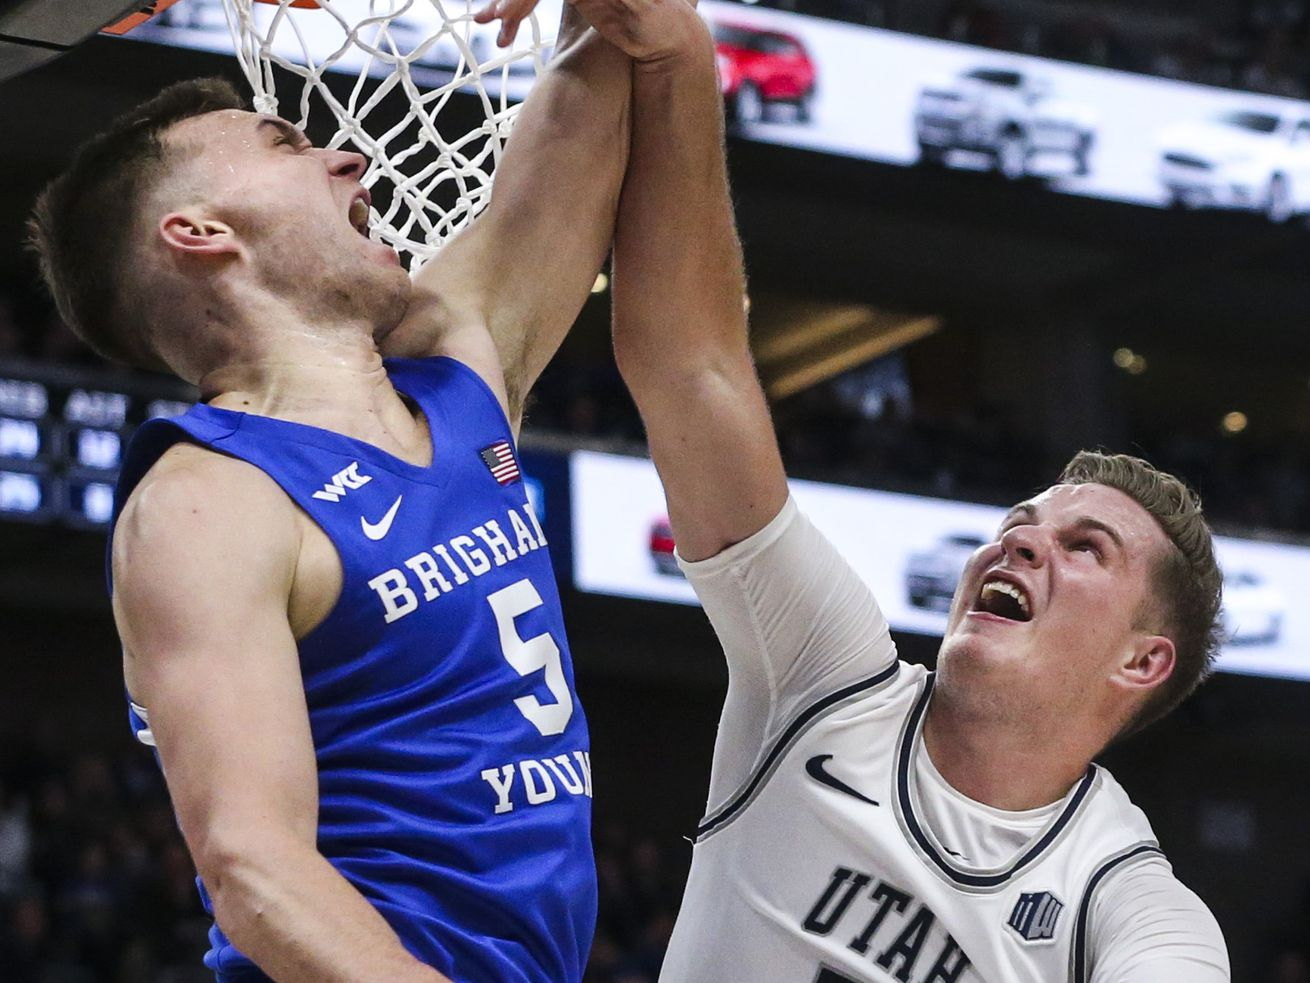 Utah State Aggies stay close to BYU Cougars despite Sam Merrill's off night